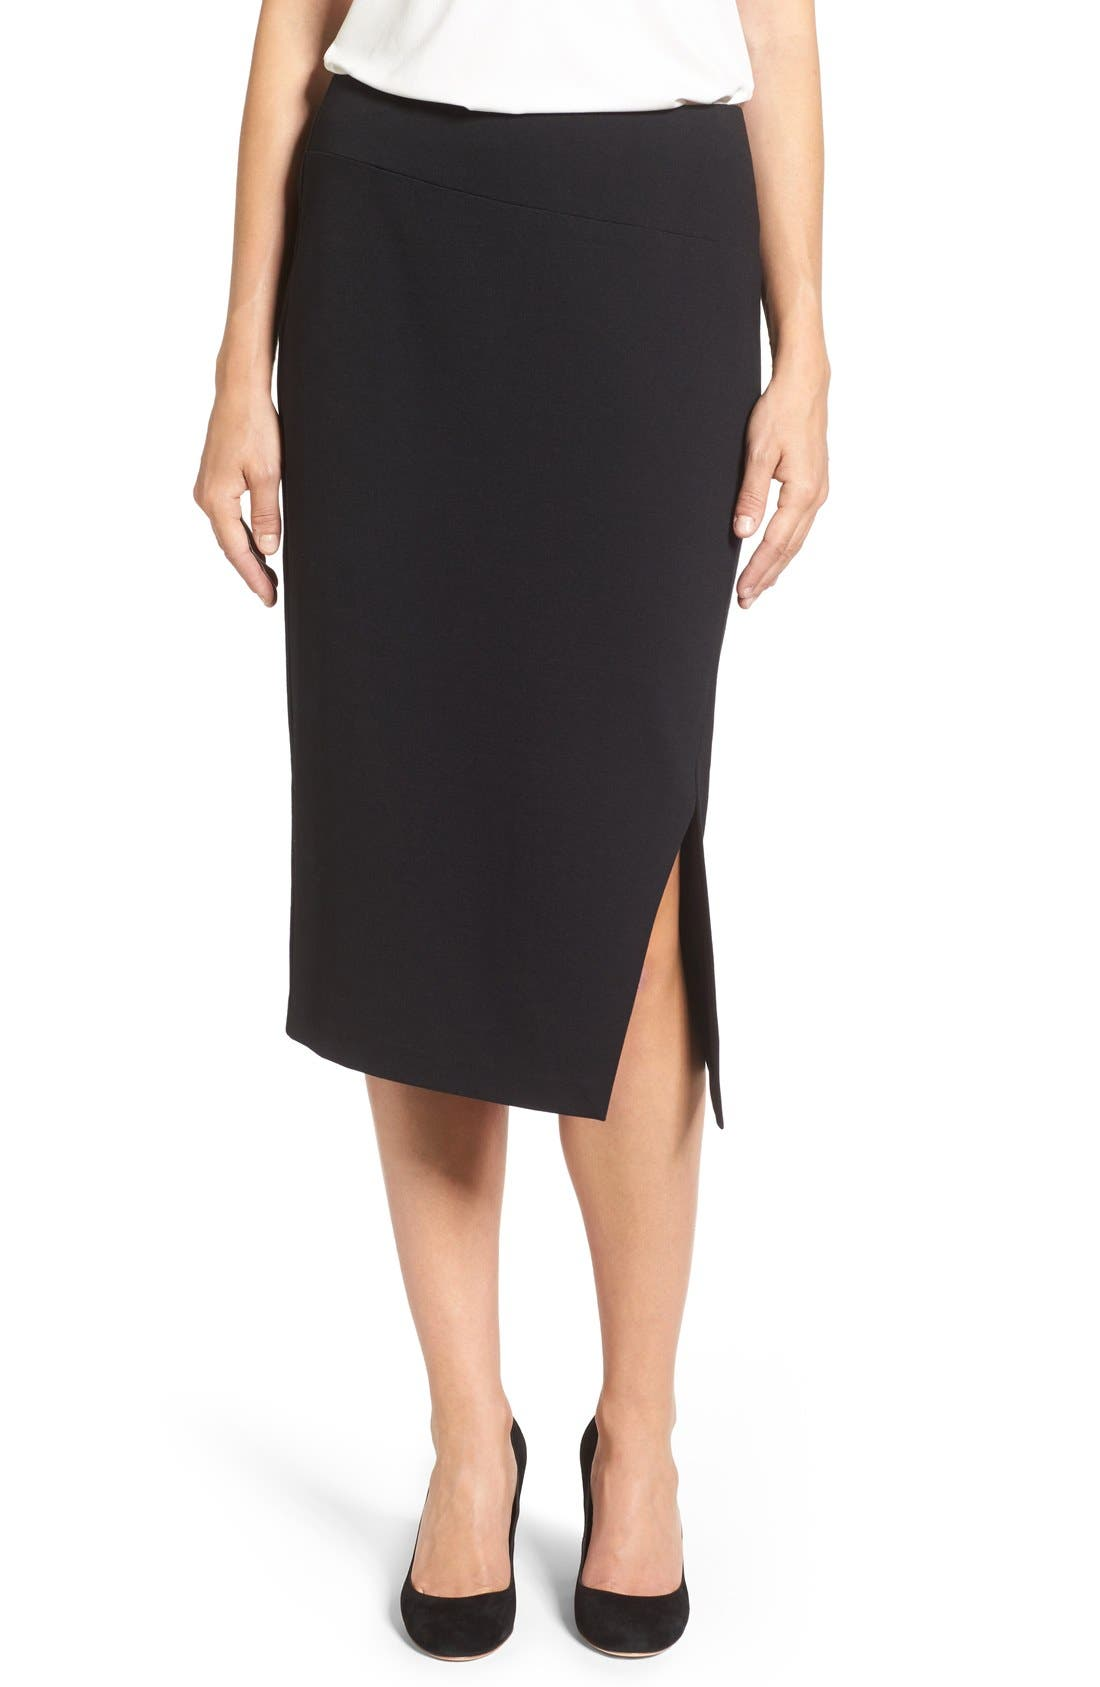 Alternate Image 1 Selected - Vince Camuto Slit Pencil Skirt